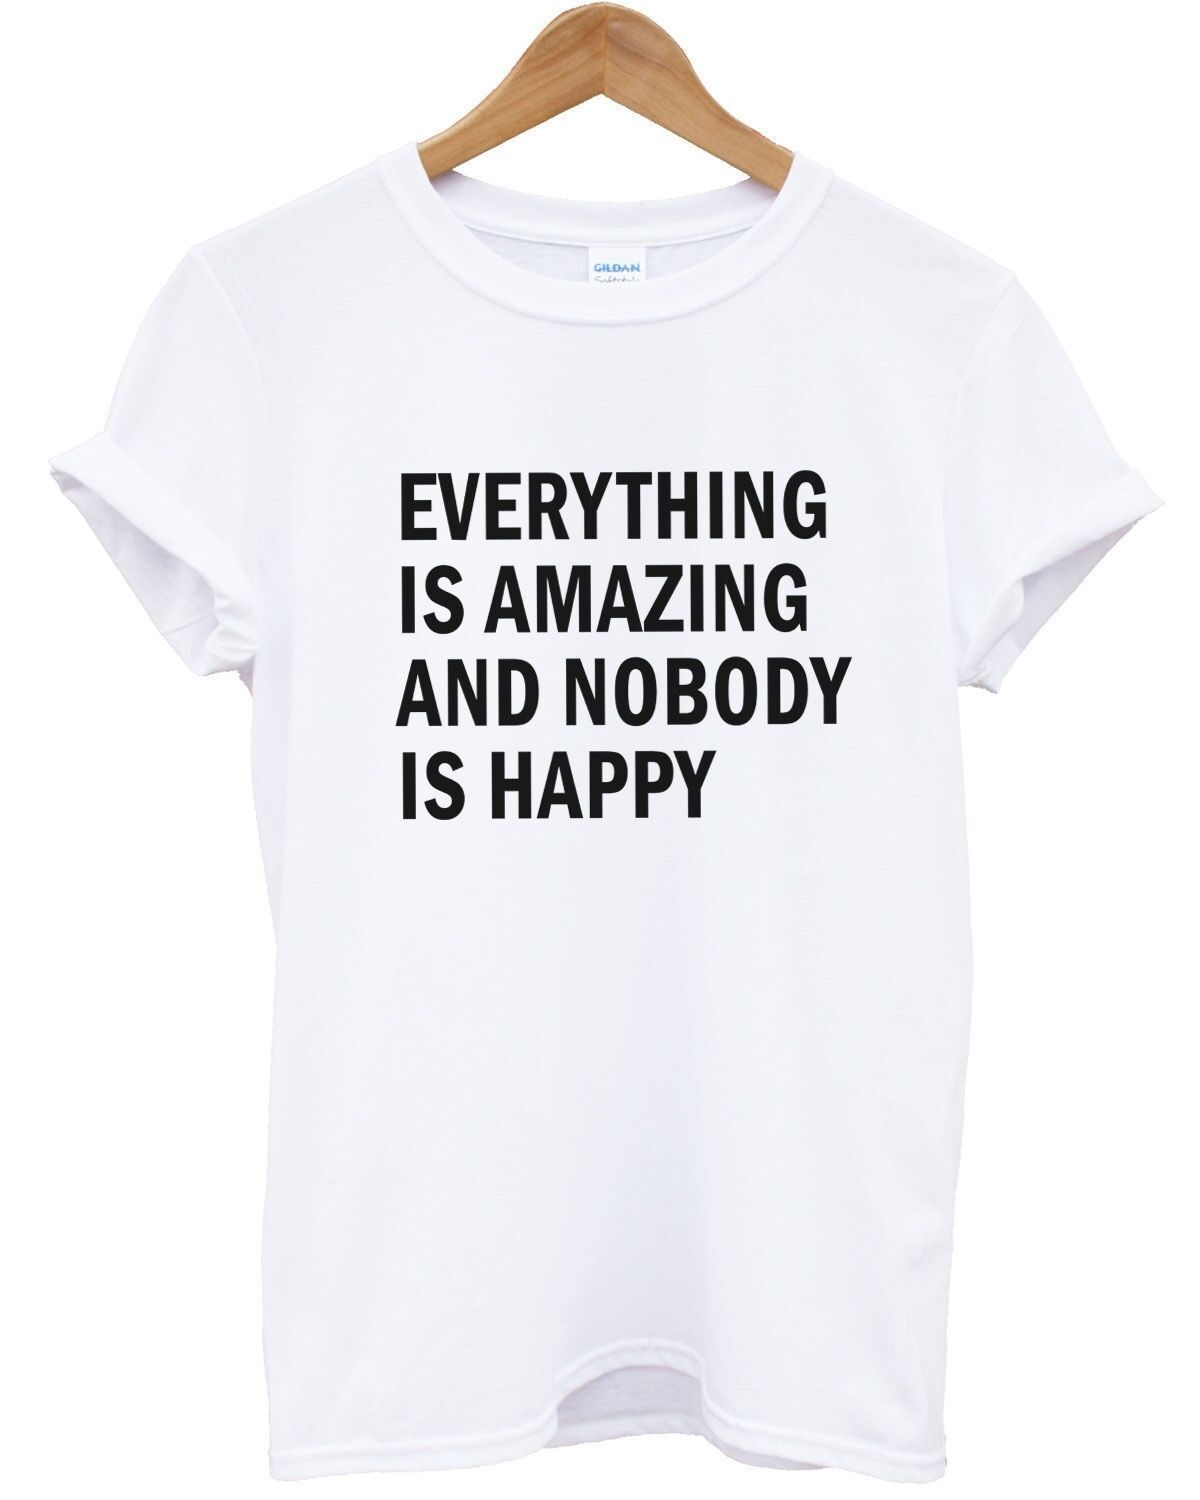 EVERYTHING IS AMAZING AND NOBODY HAPPY T SHIRT TOP HIPSTER MEN WOMEN BLOG image